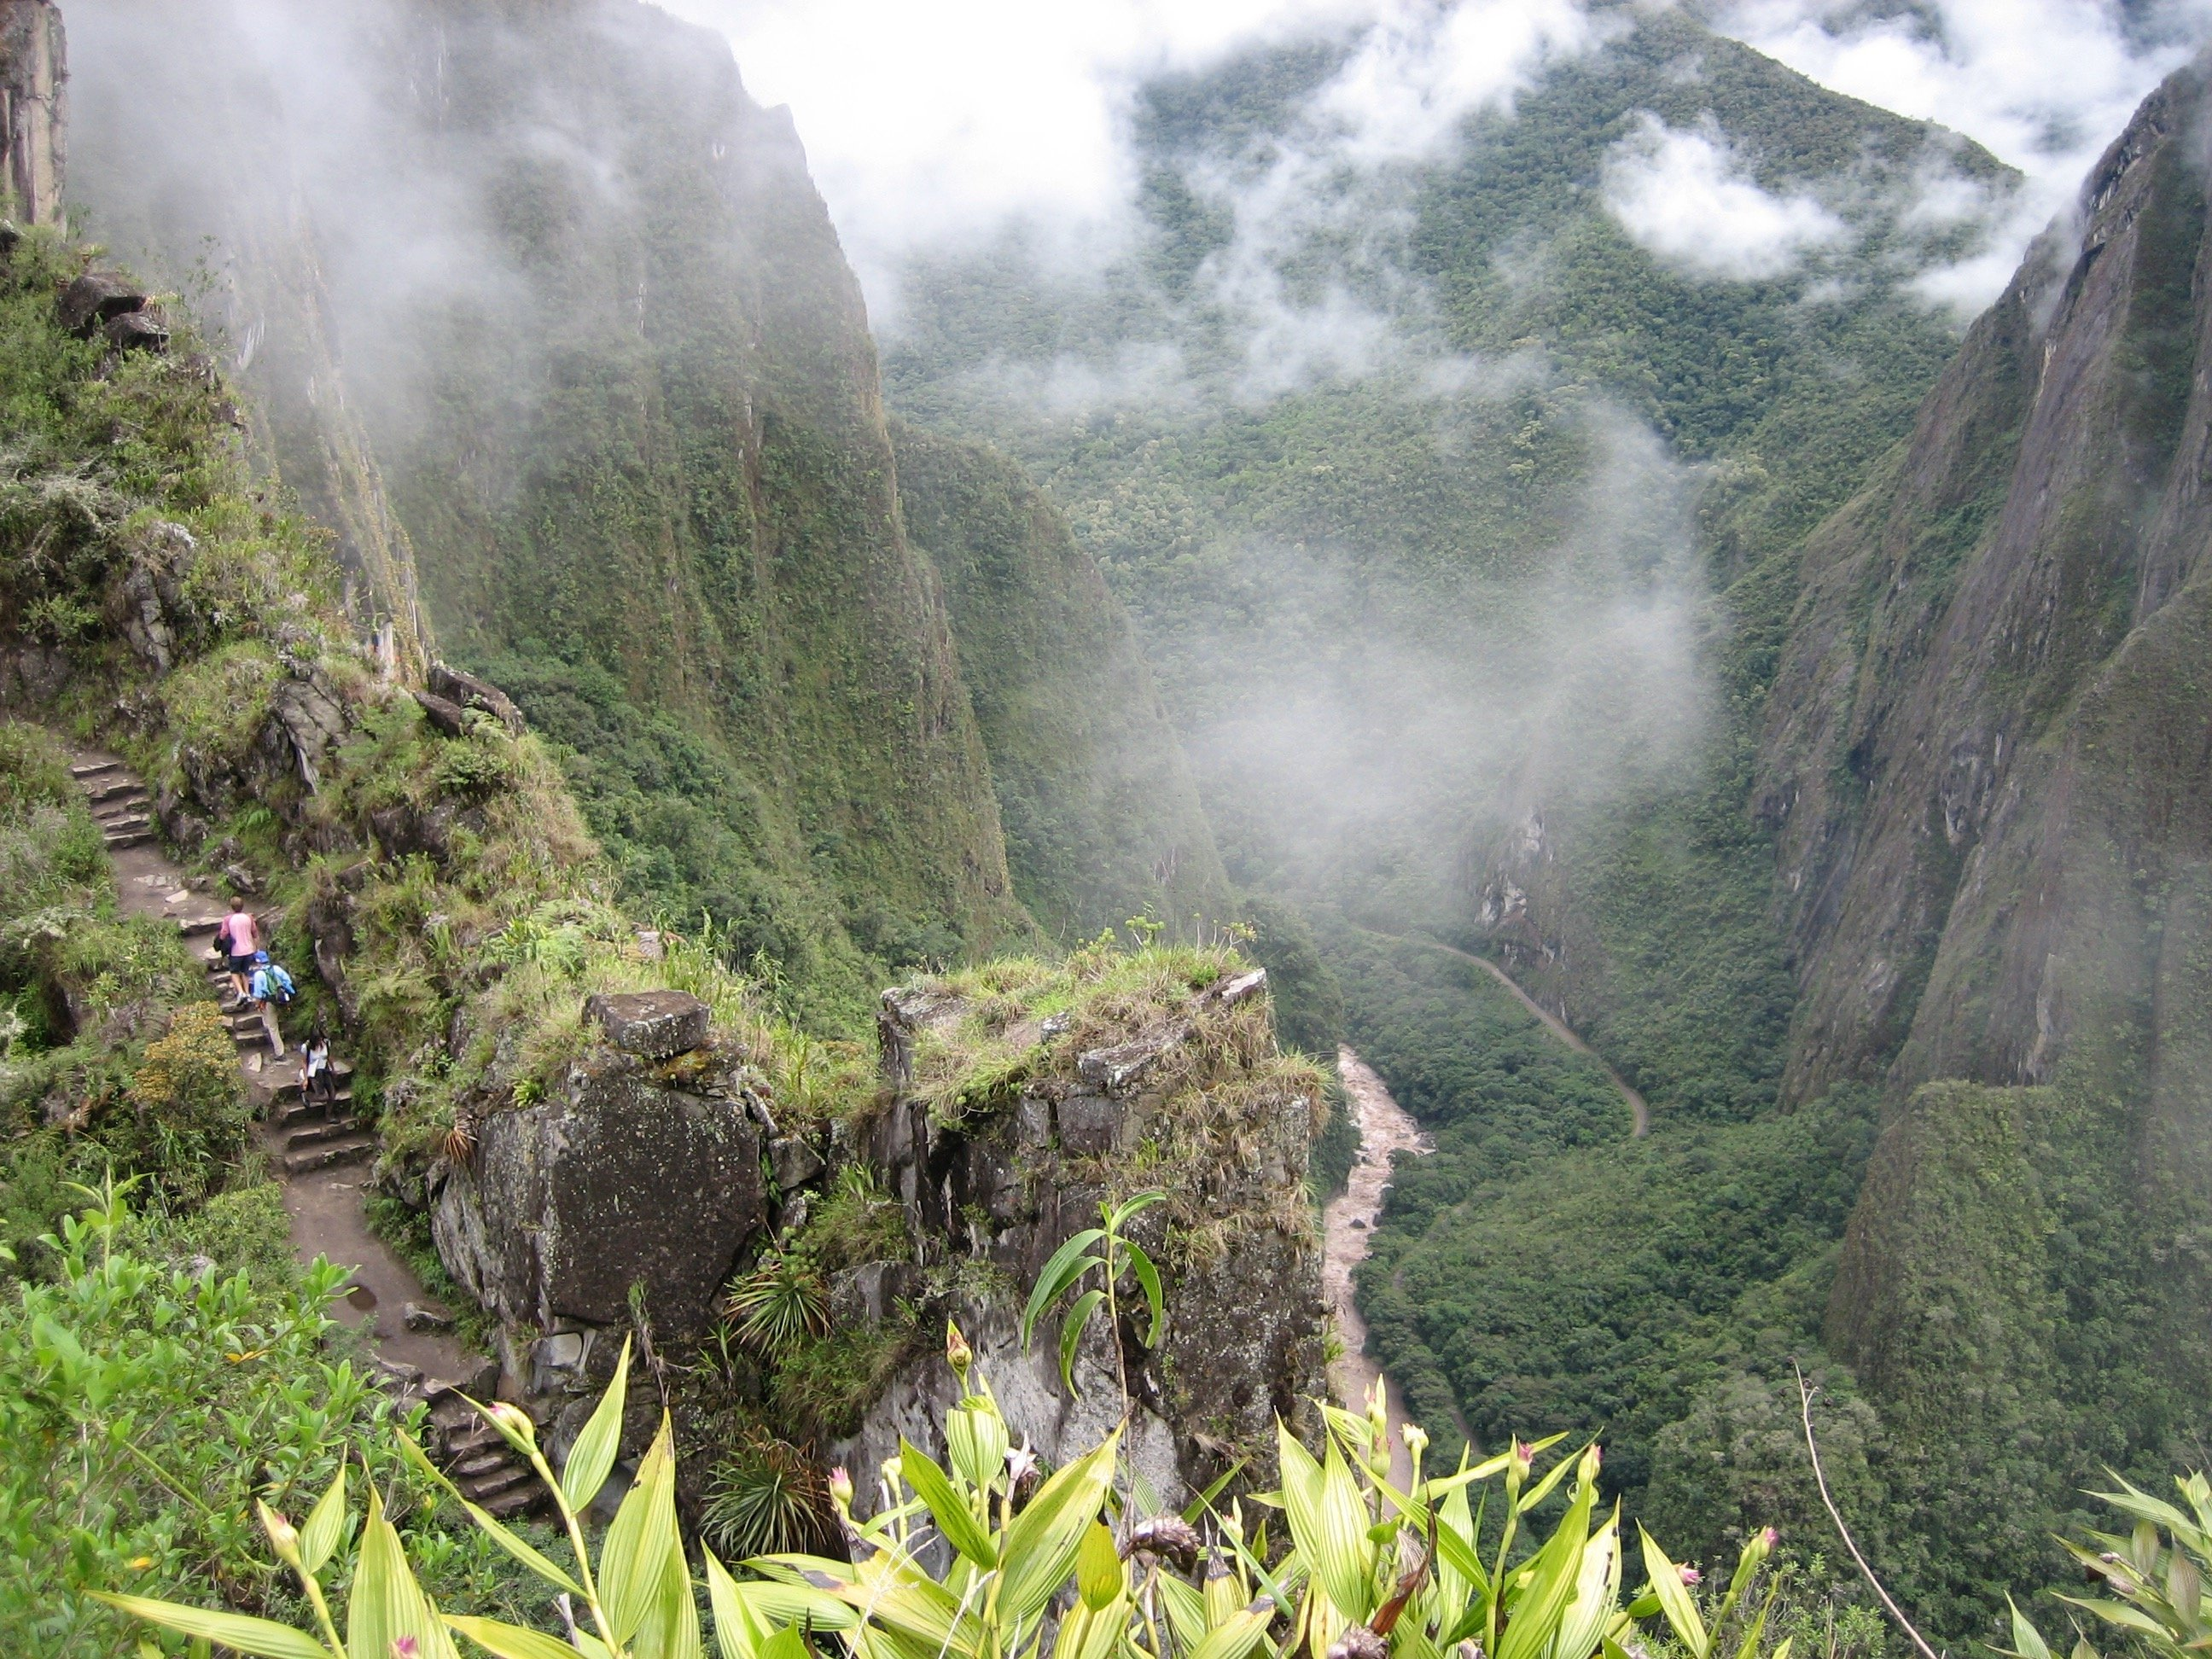 View of Machu Picchu Trail